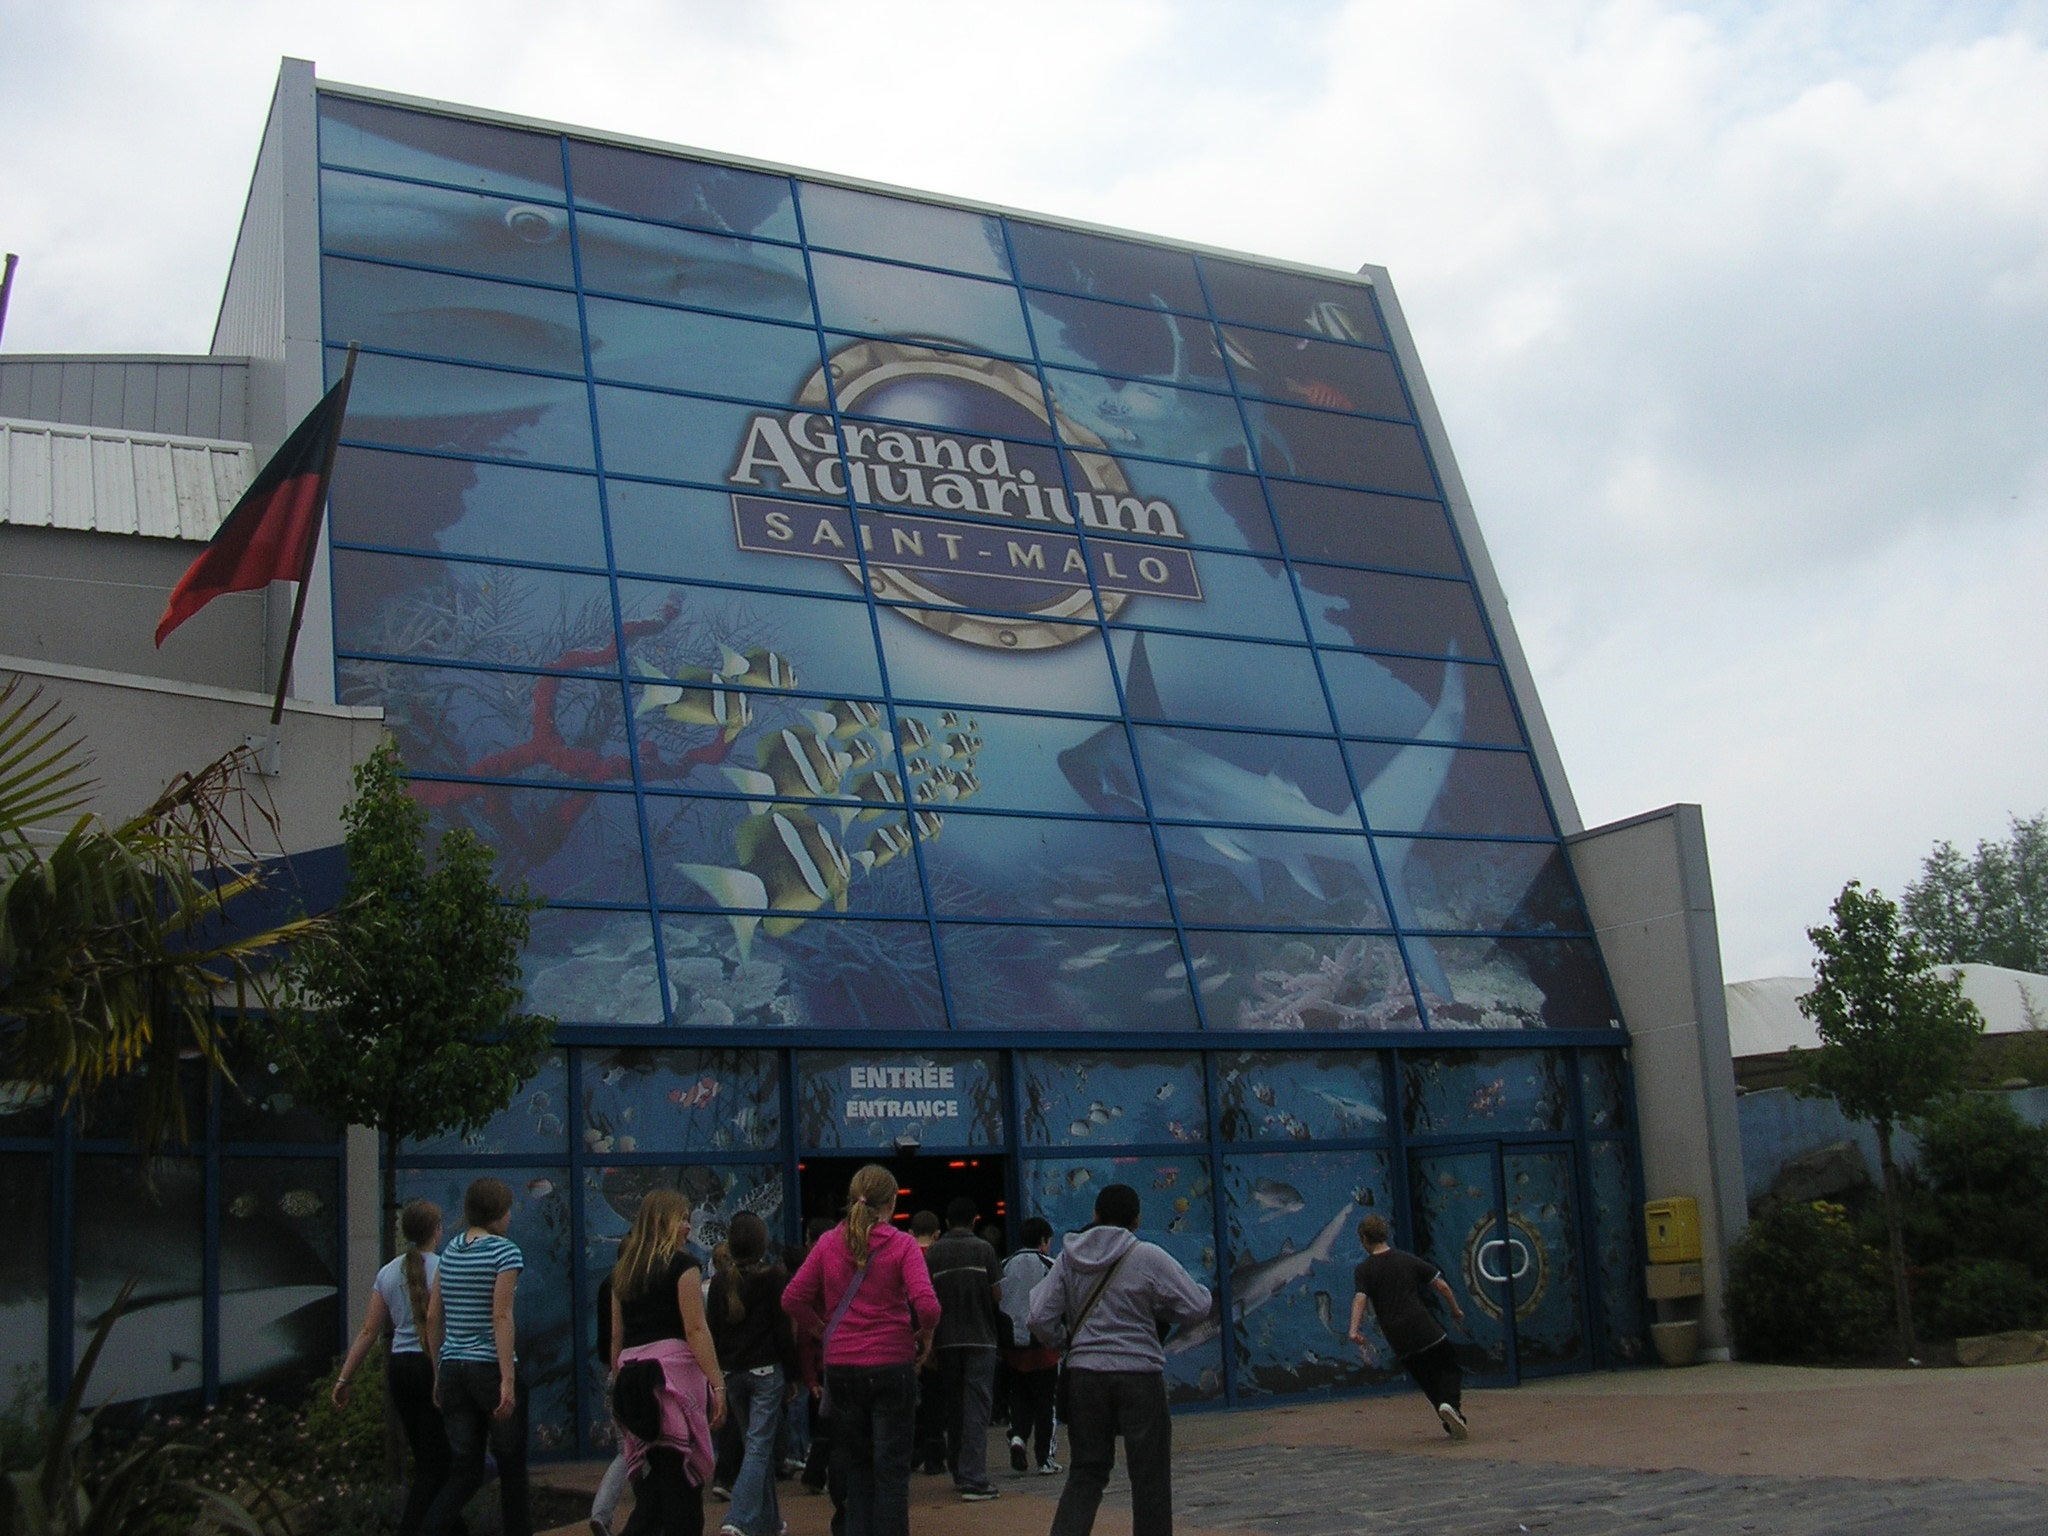 The large Aquarium of Saint Malo